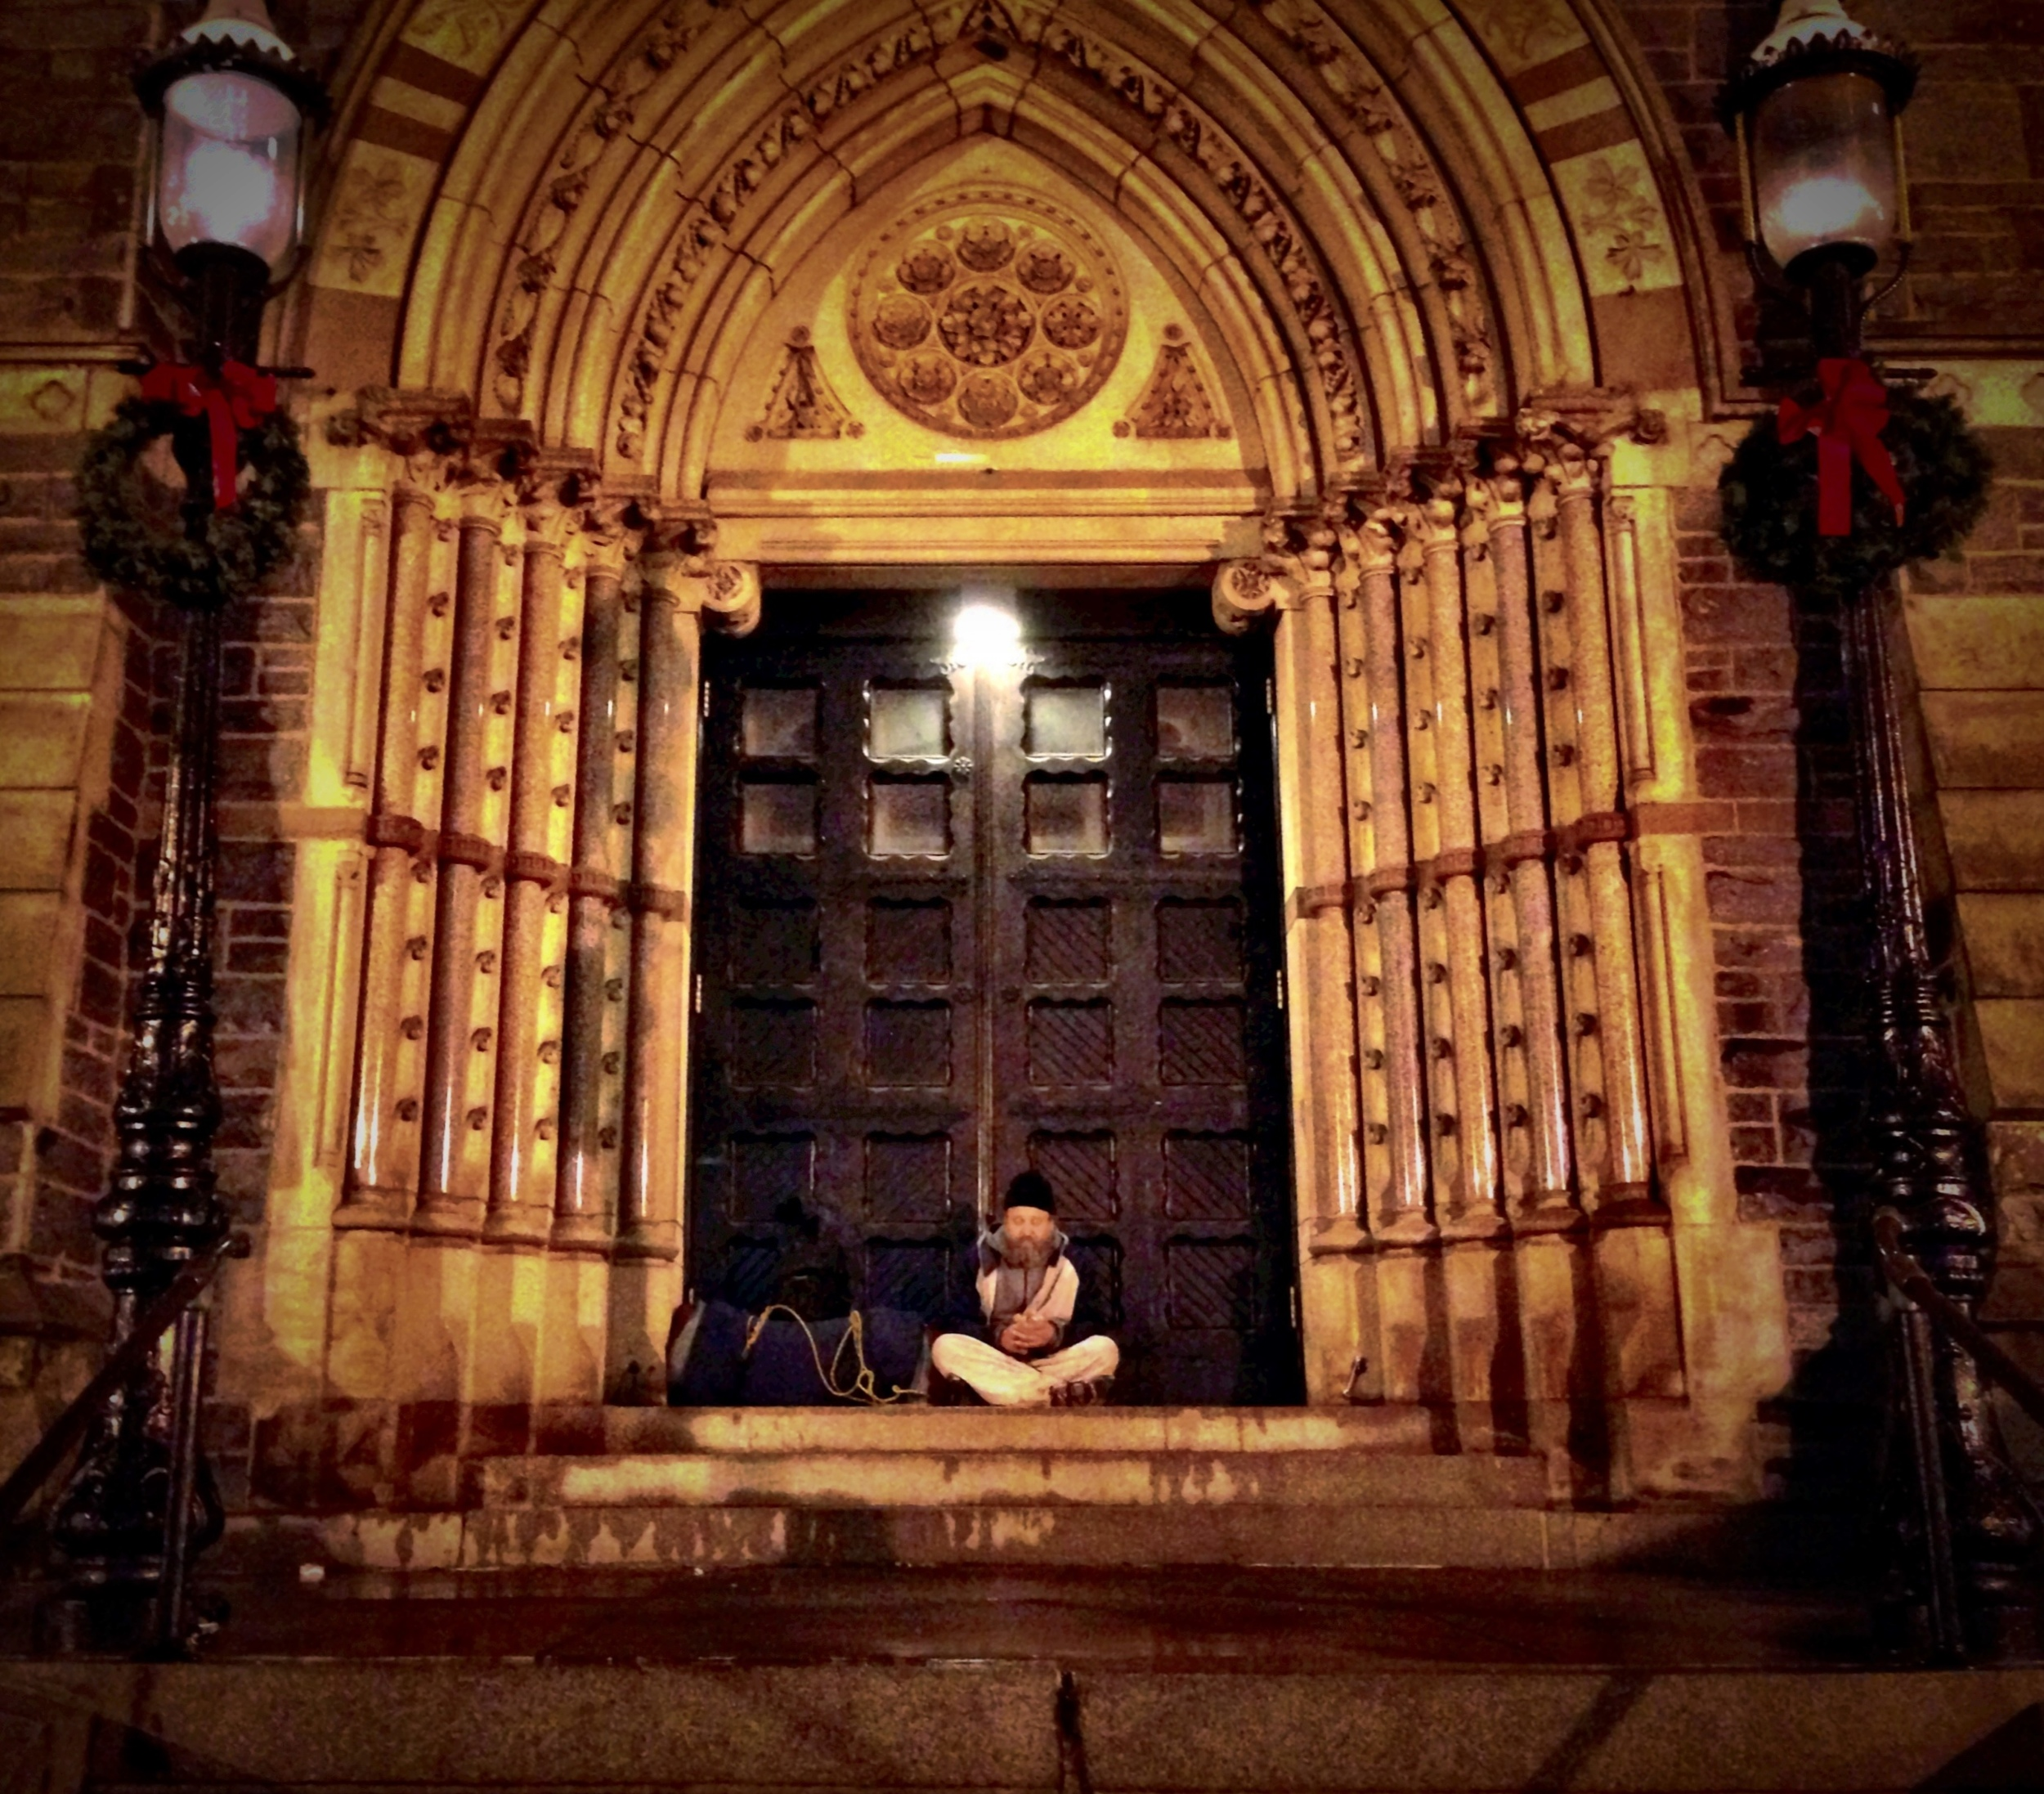 A homeless man sits in a church's archway in Boston on a cold winter night.